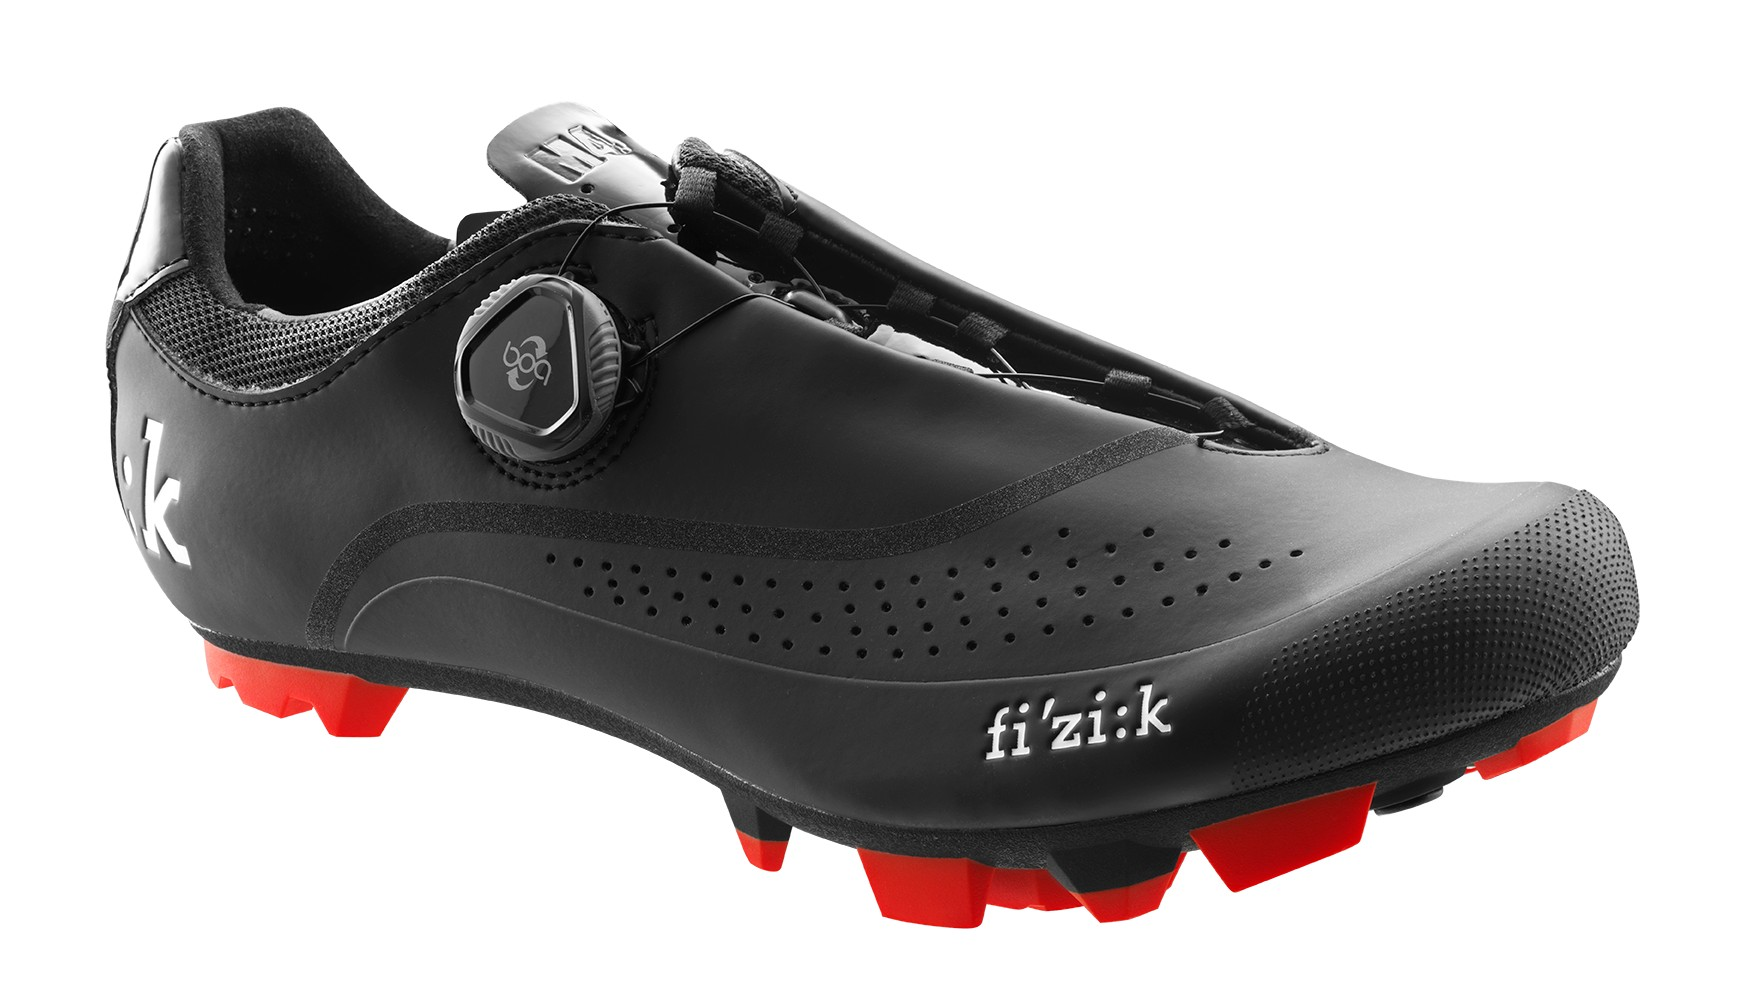 Black with Red Trim SHOES FIZIK M4M-BC1030-17-42 Black ... MEN/'S MOUNTAIN